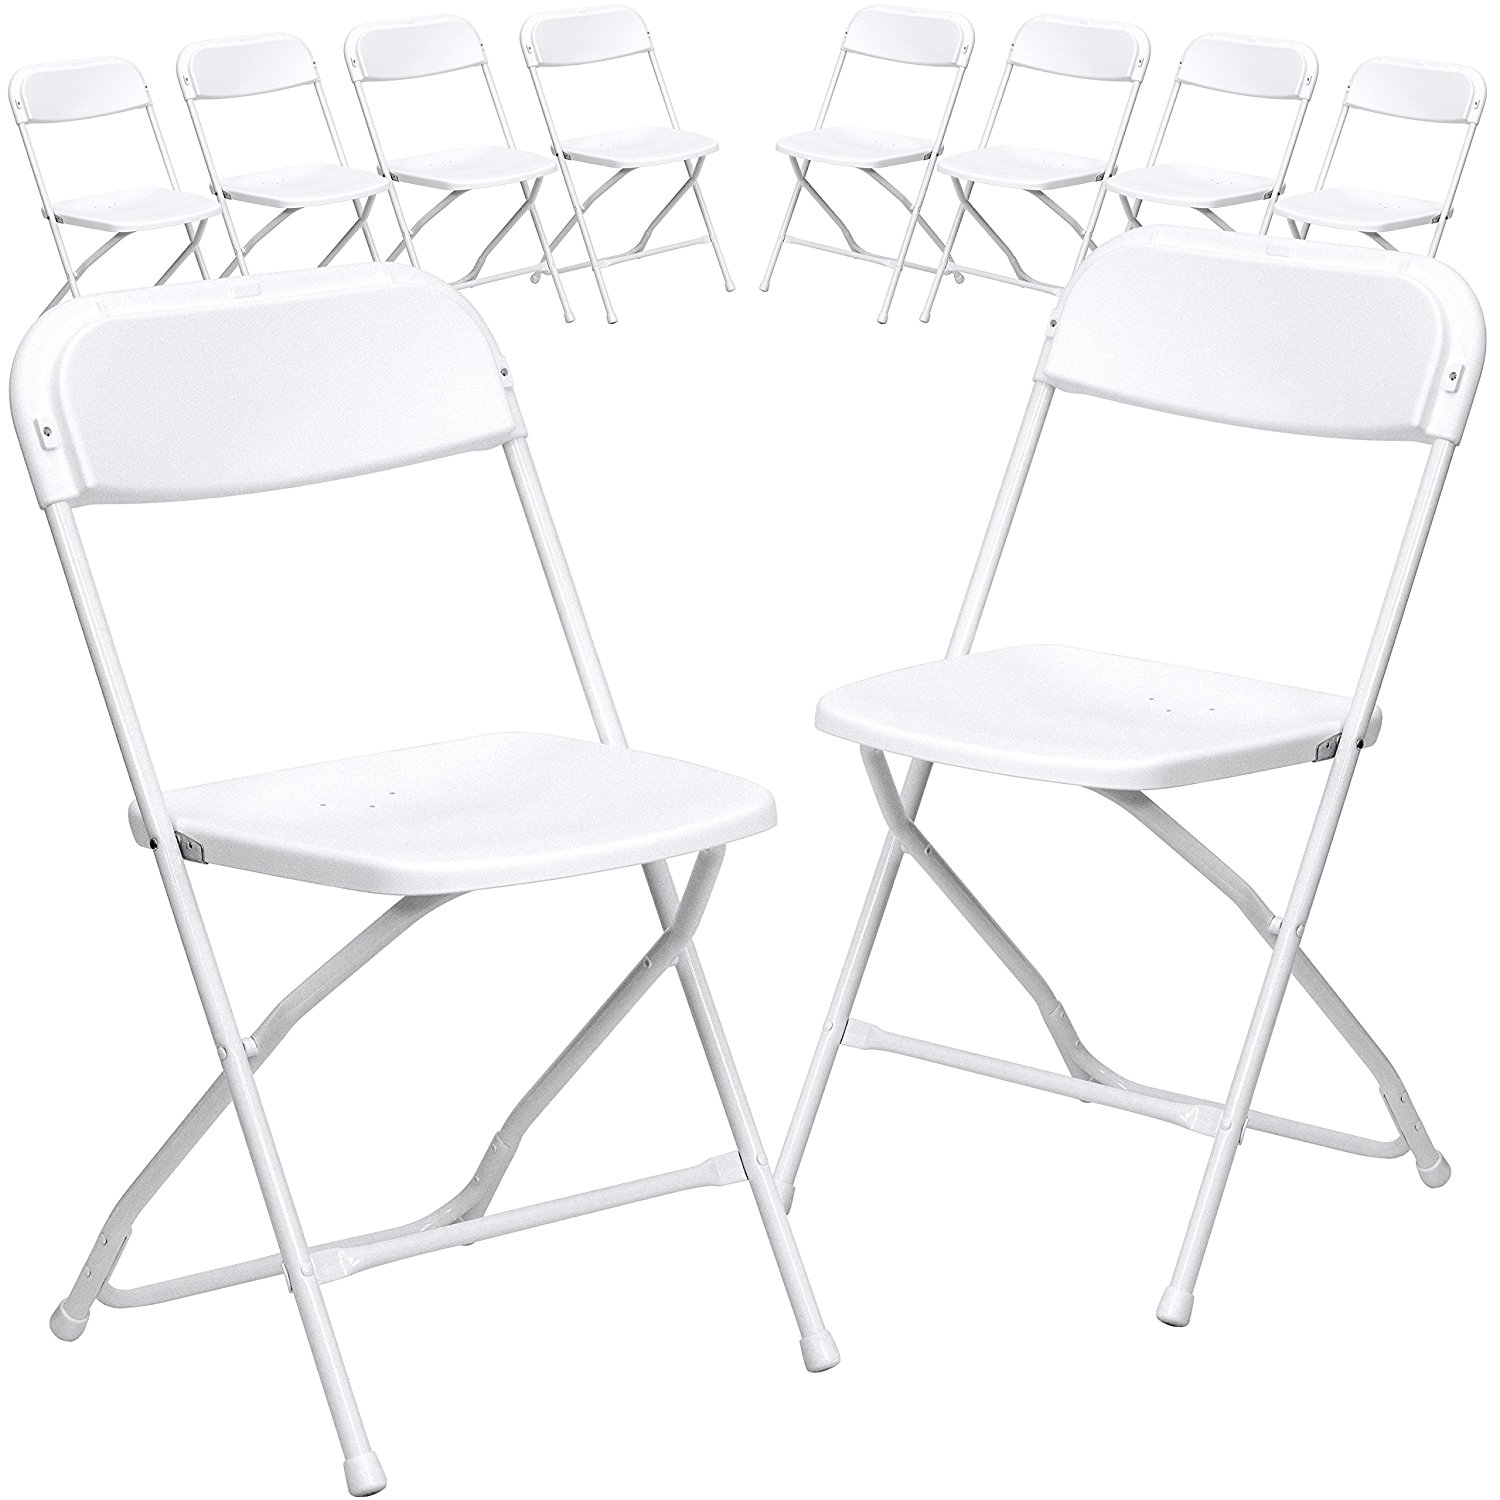 Attrayant A Folding Chair Affordable Plastic For Rent